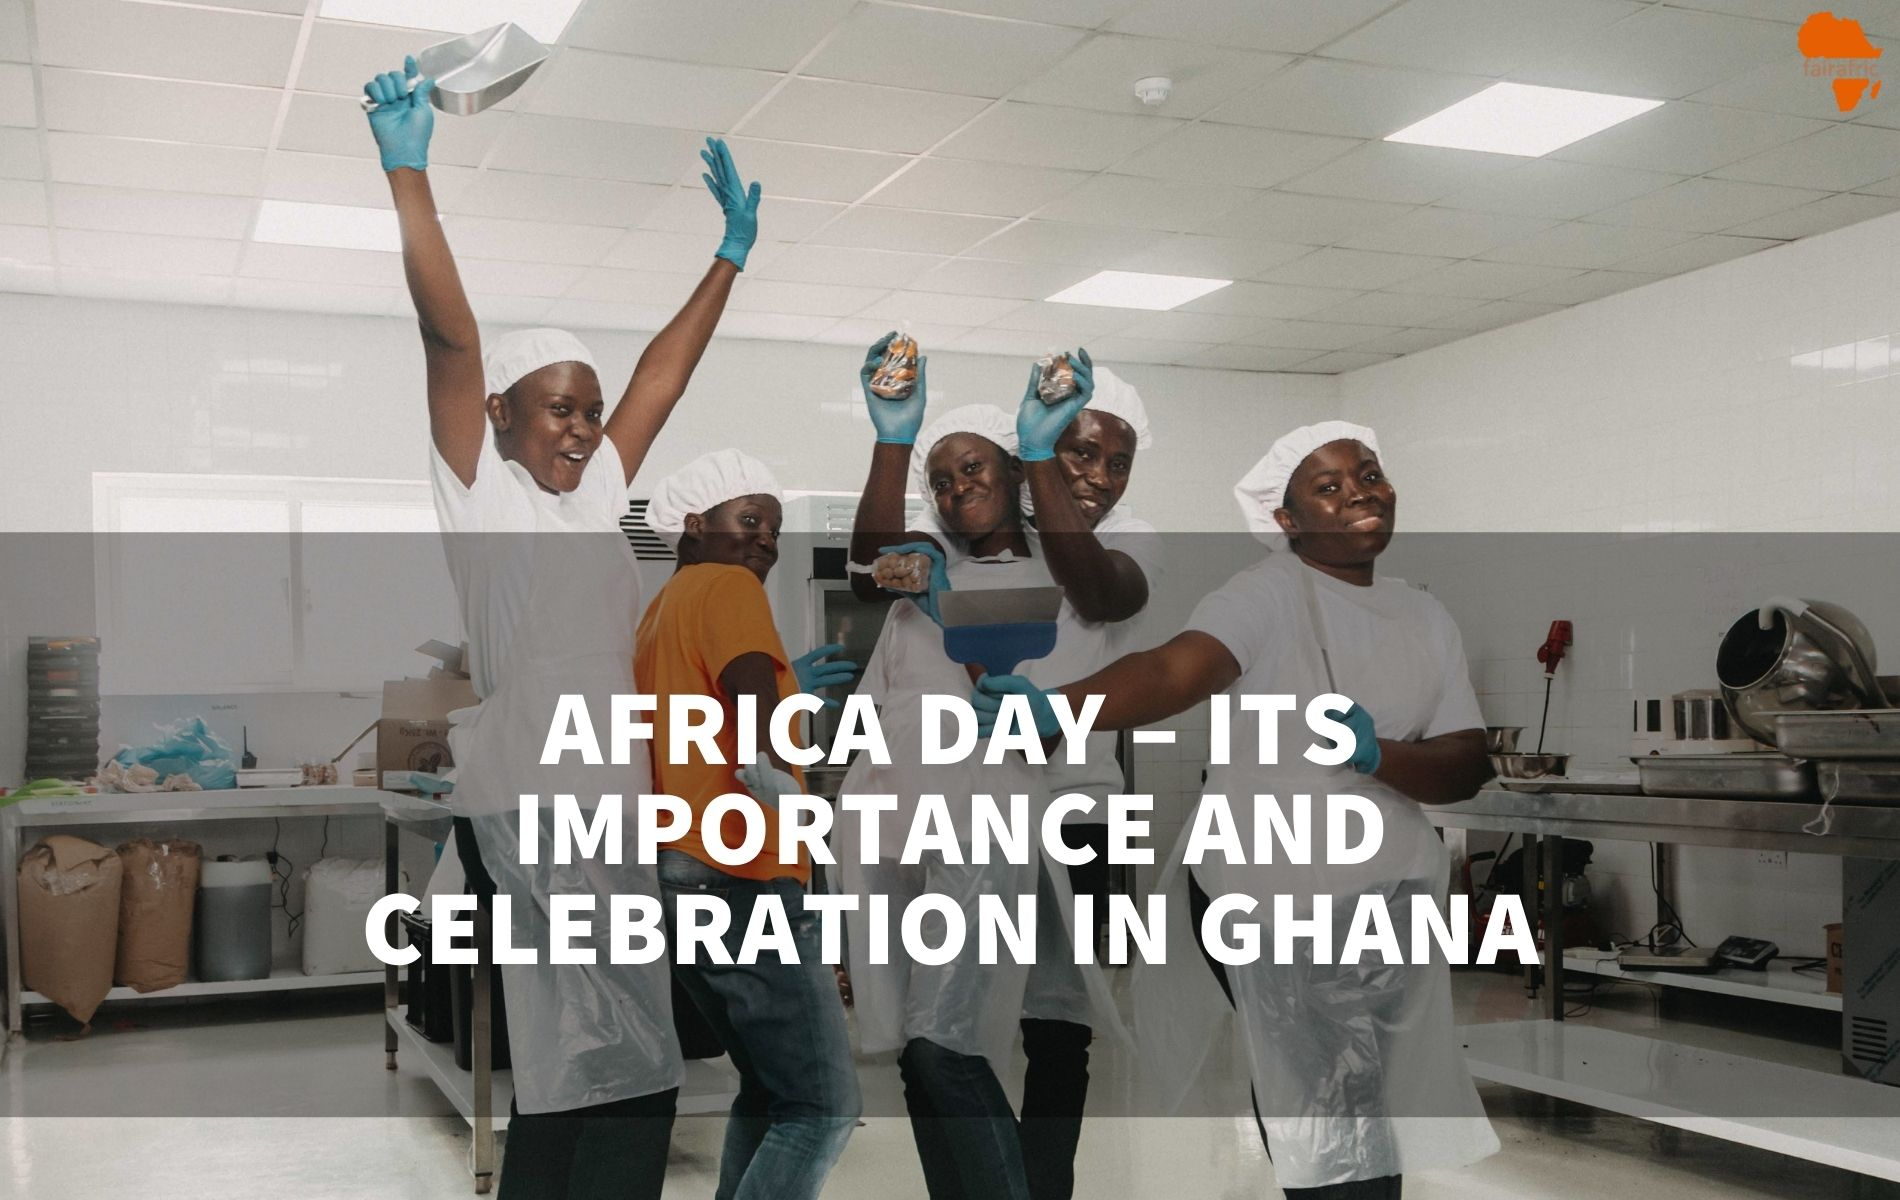 Africa Day – its importance and celebration in Ghana